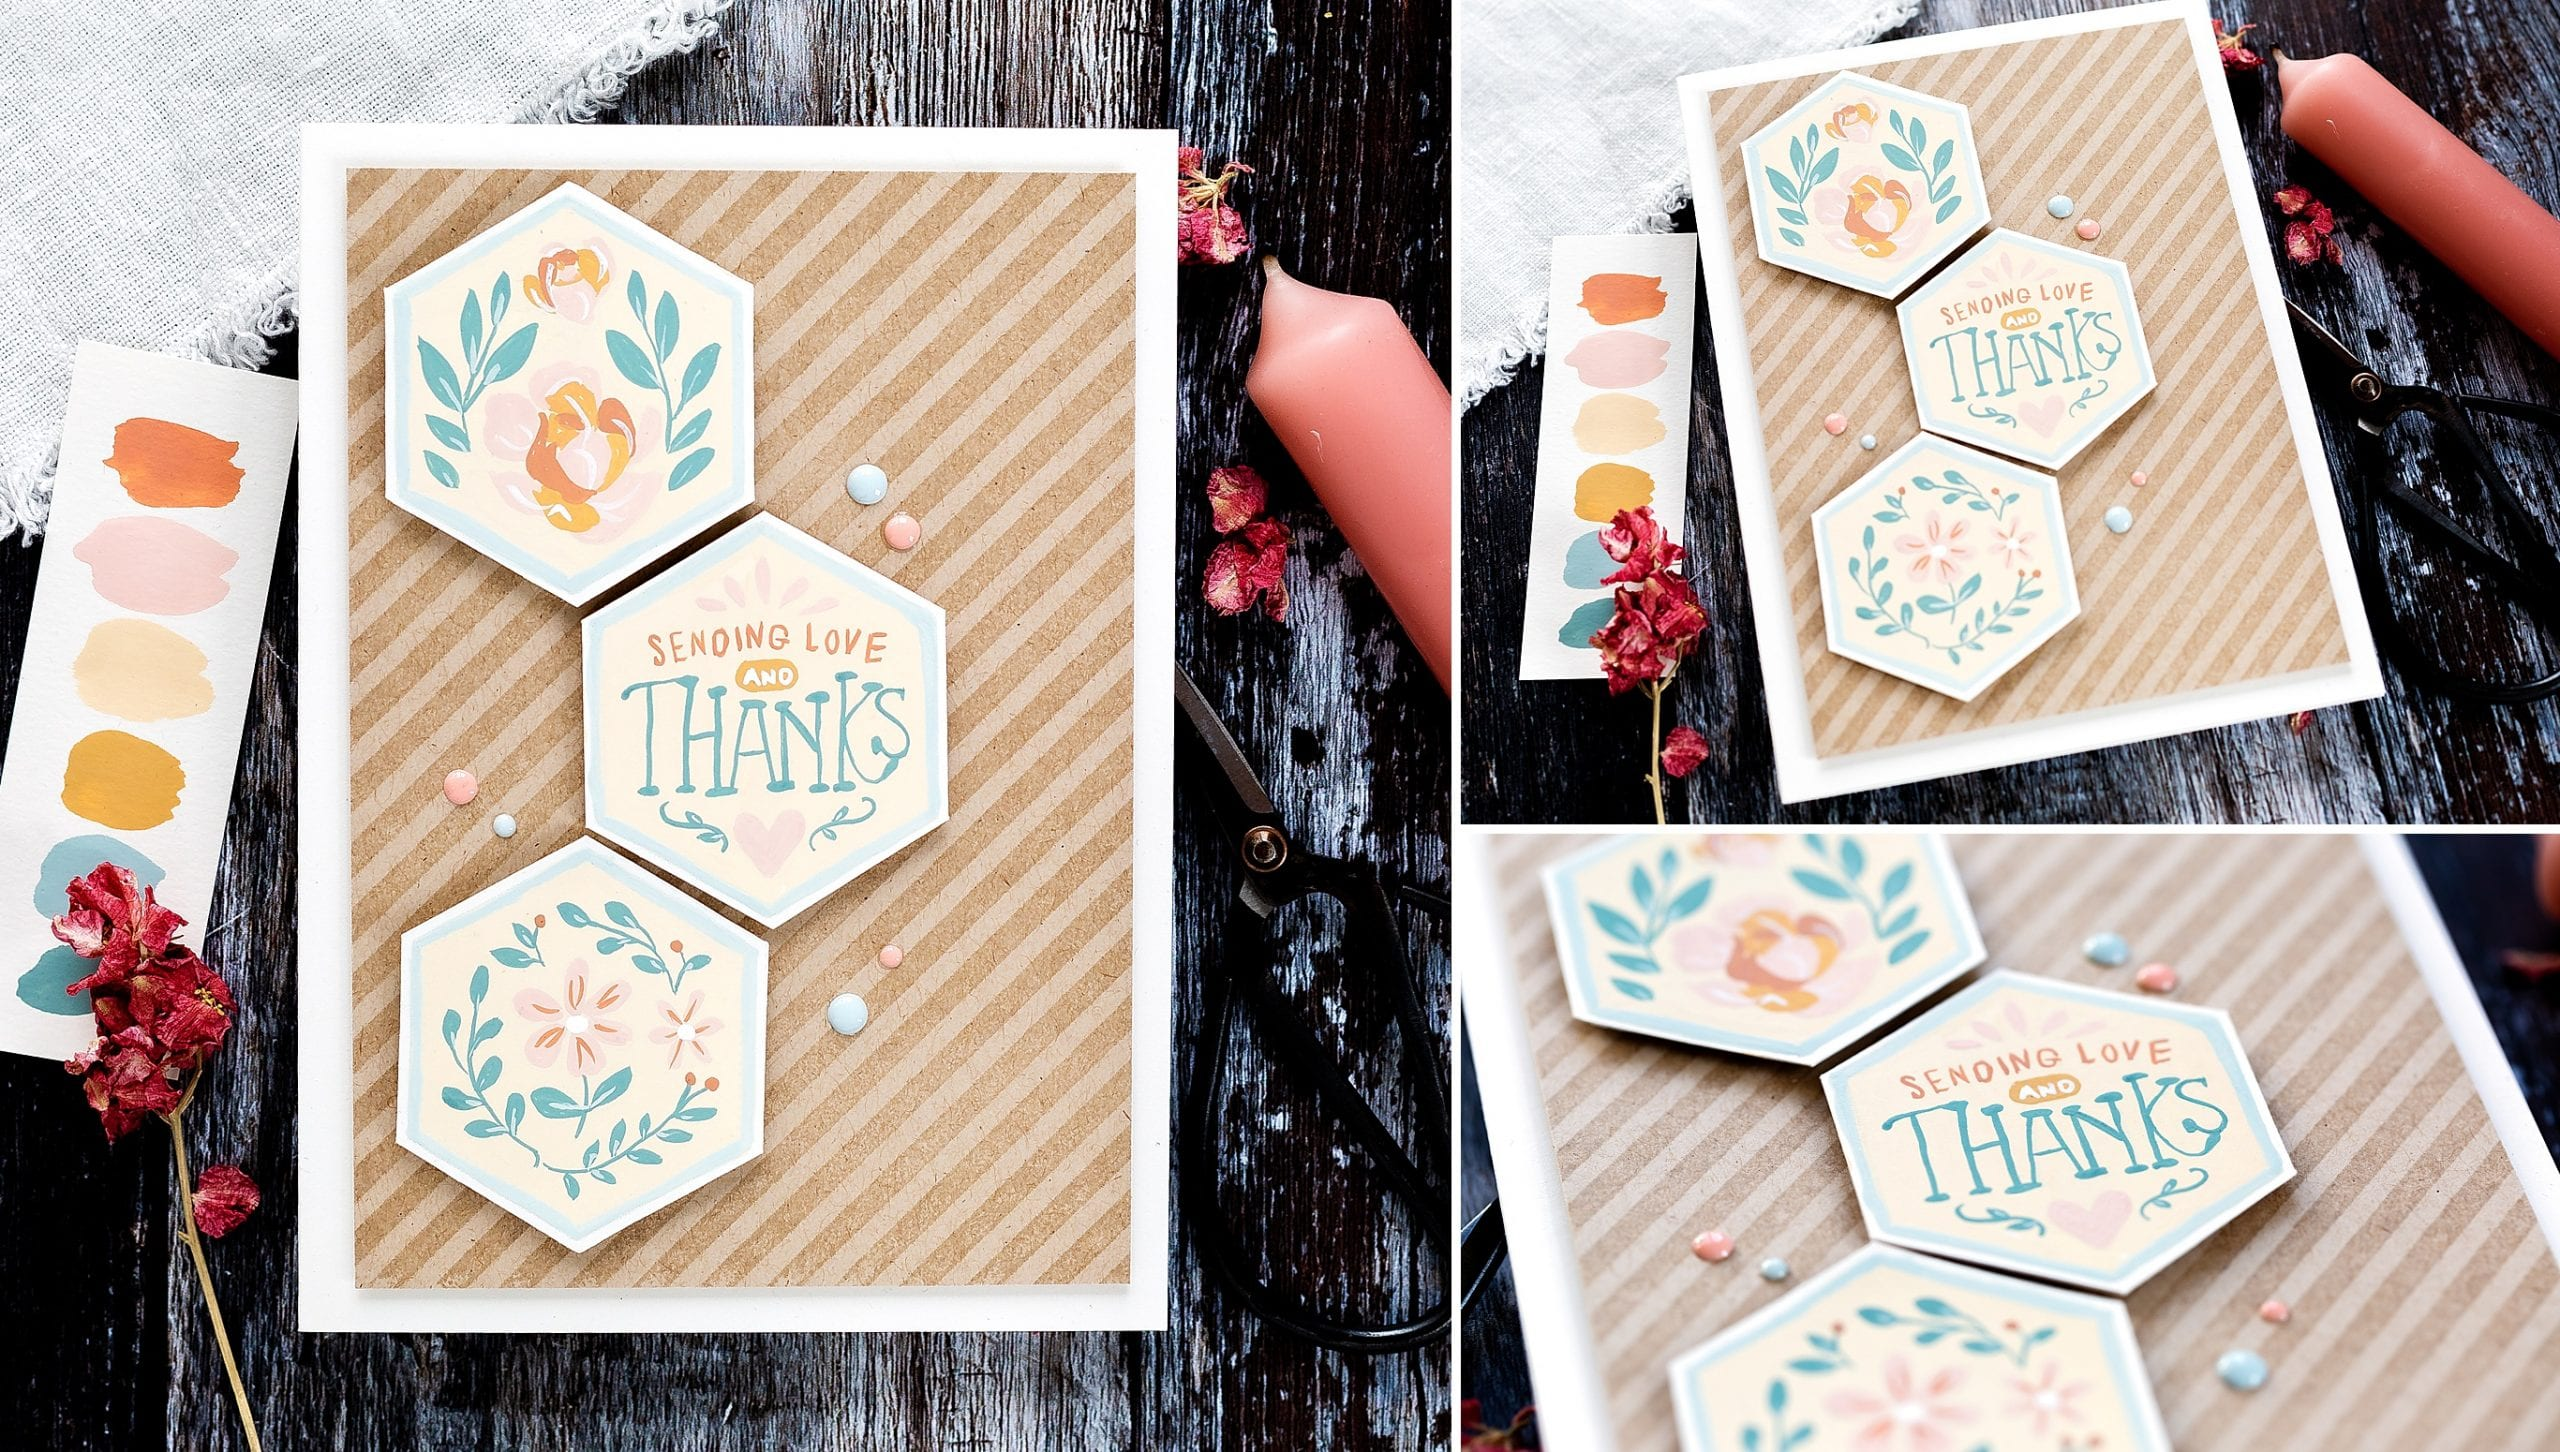 Step by step tutorial of a limited gouache colour palette, folk art, home decor inspired handmade cards by Debby Hughes using supplies from Simon Says Stamp #gouache #homemade